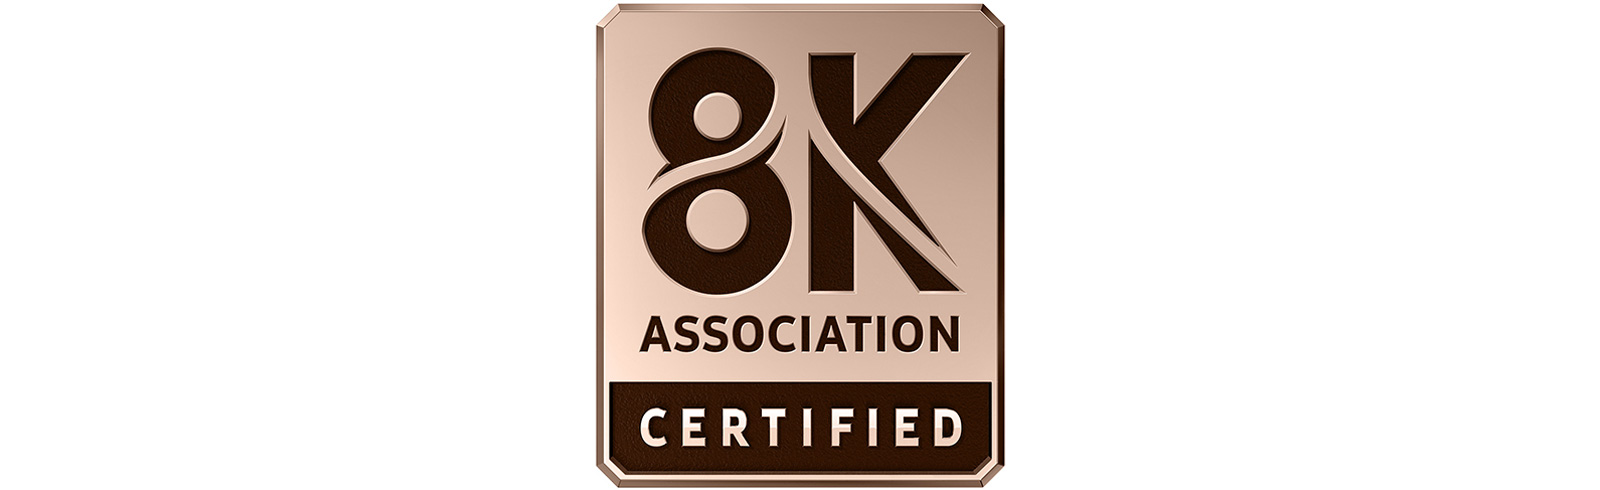 Samsung received the industry's first 8K certification for all 2020 QLED 8K products from the 8KA